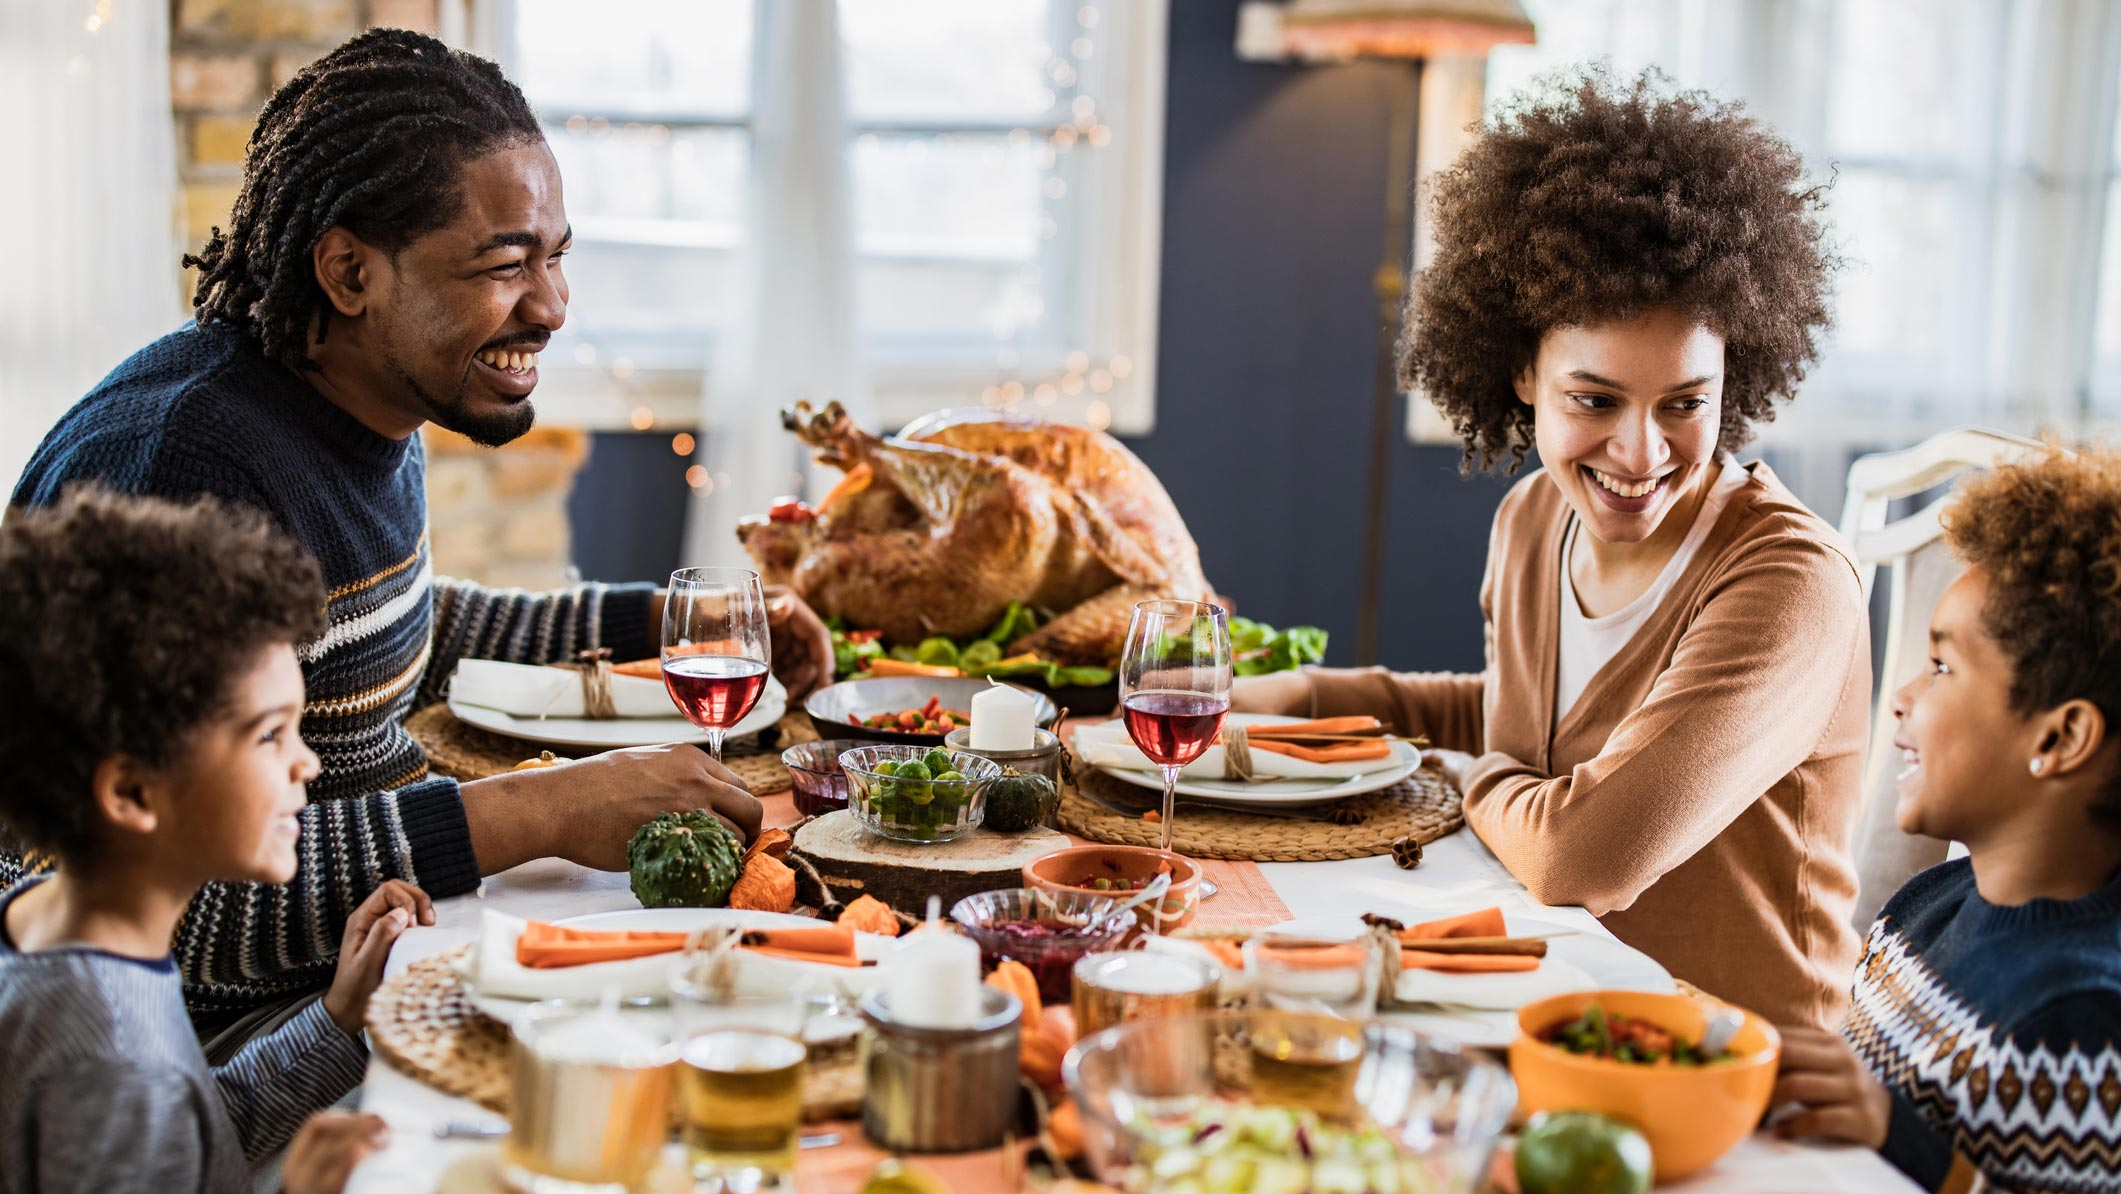 Studies Show the Benefits of Eating Together as a Family ...